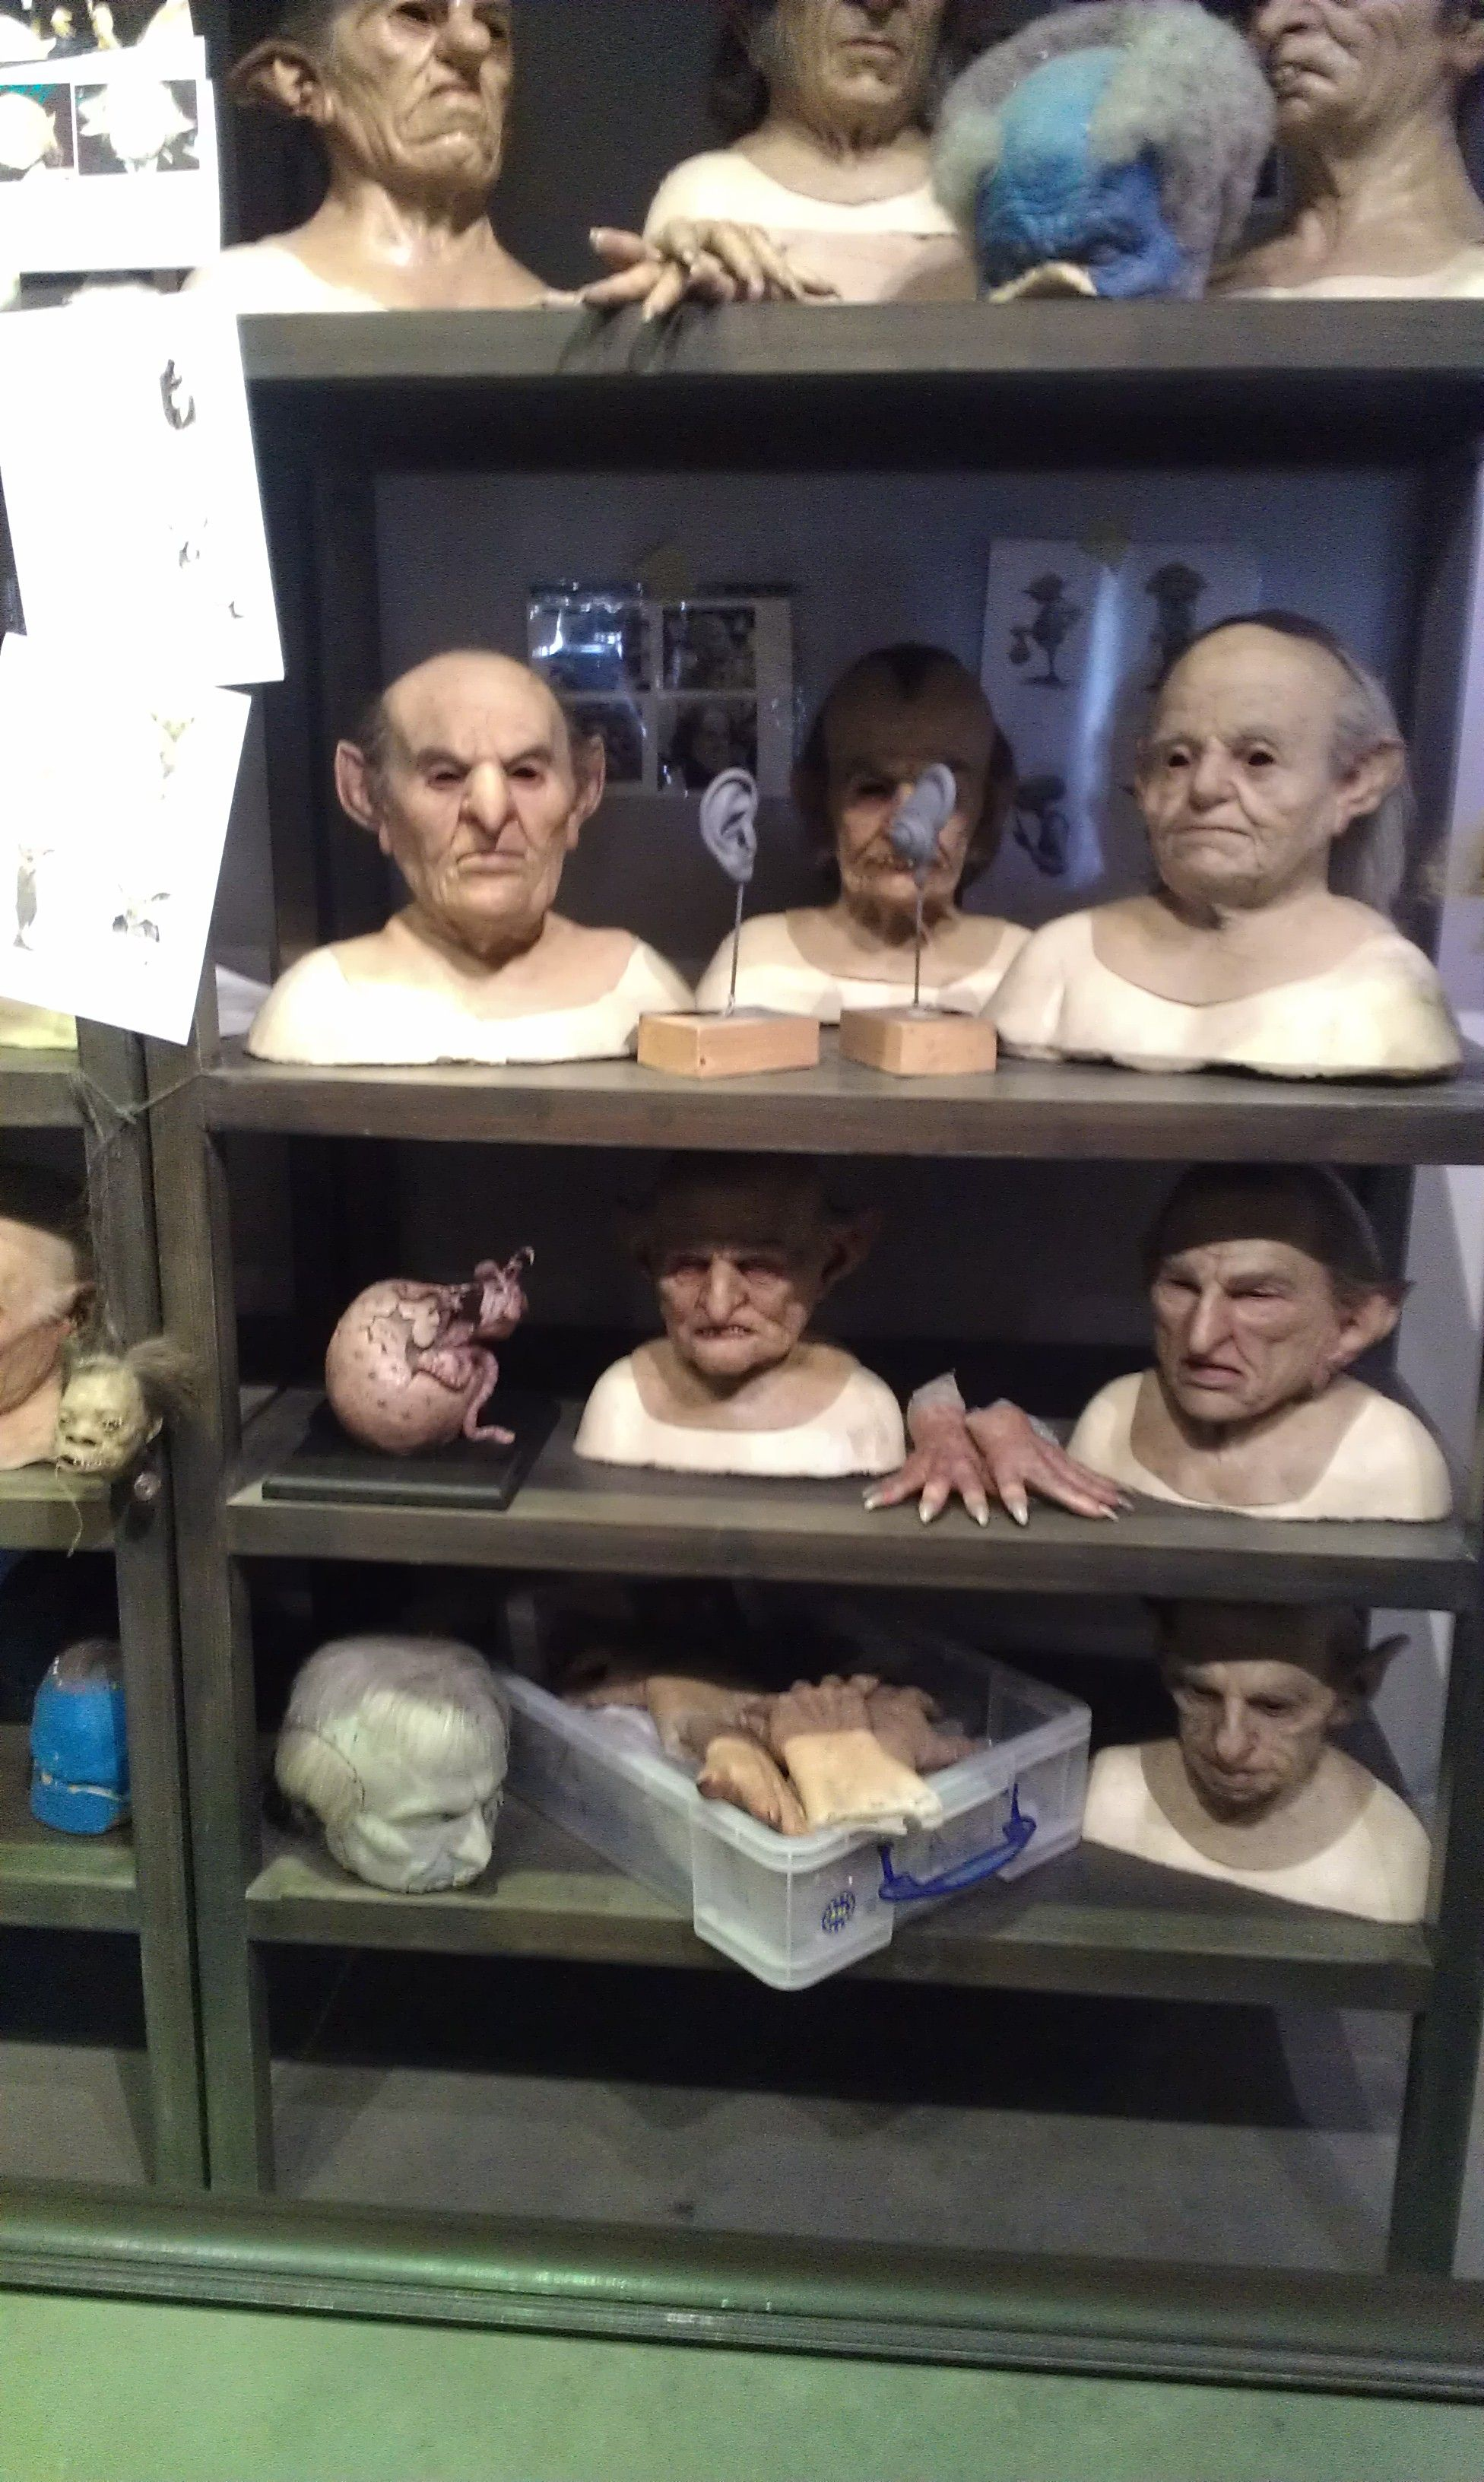 All the on cast masks and accessories